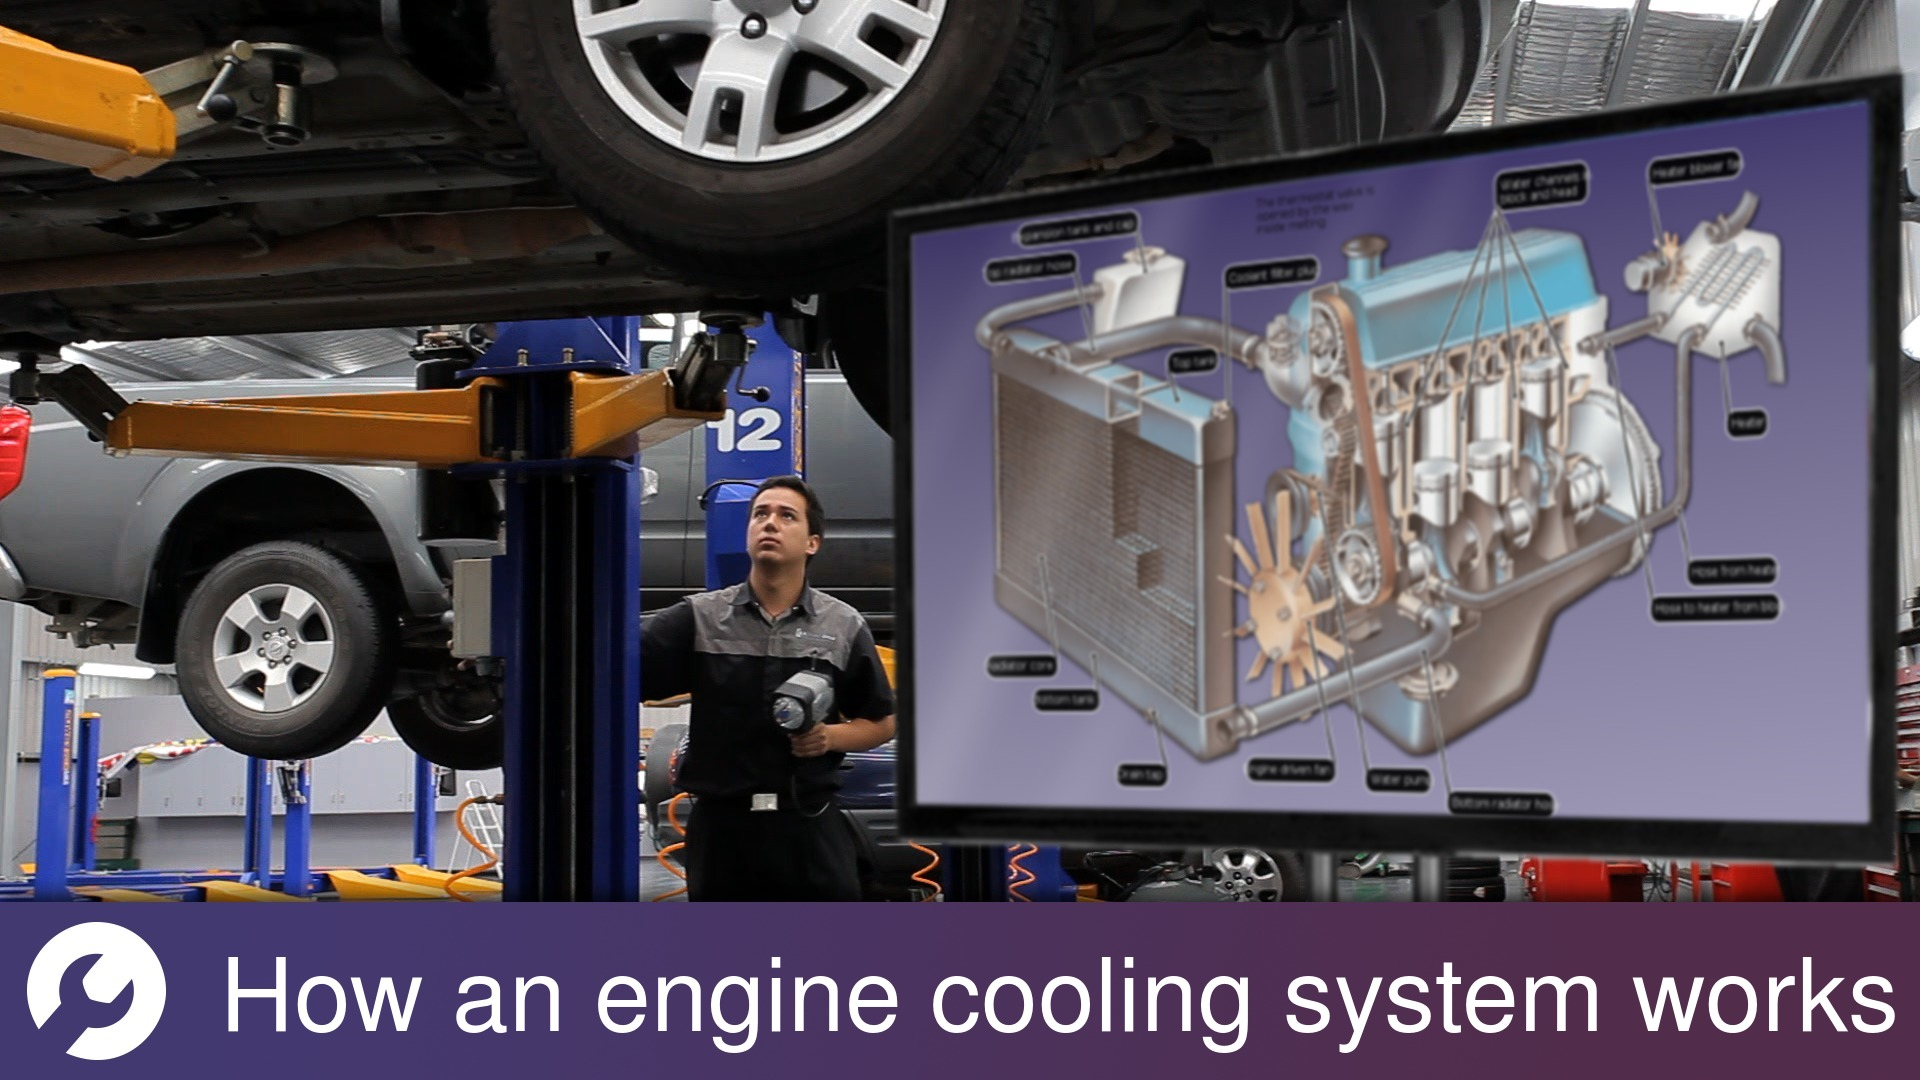 Fan That Blows Cold Air >> How an engine cooling system works | How a Car Works